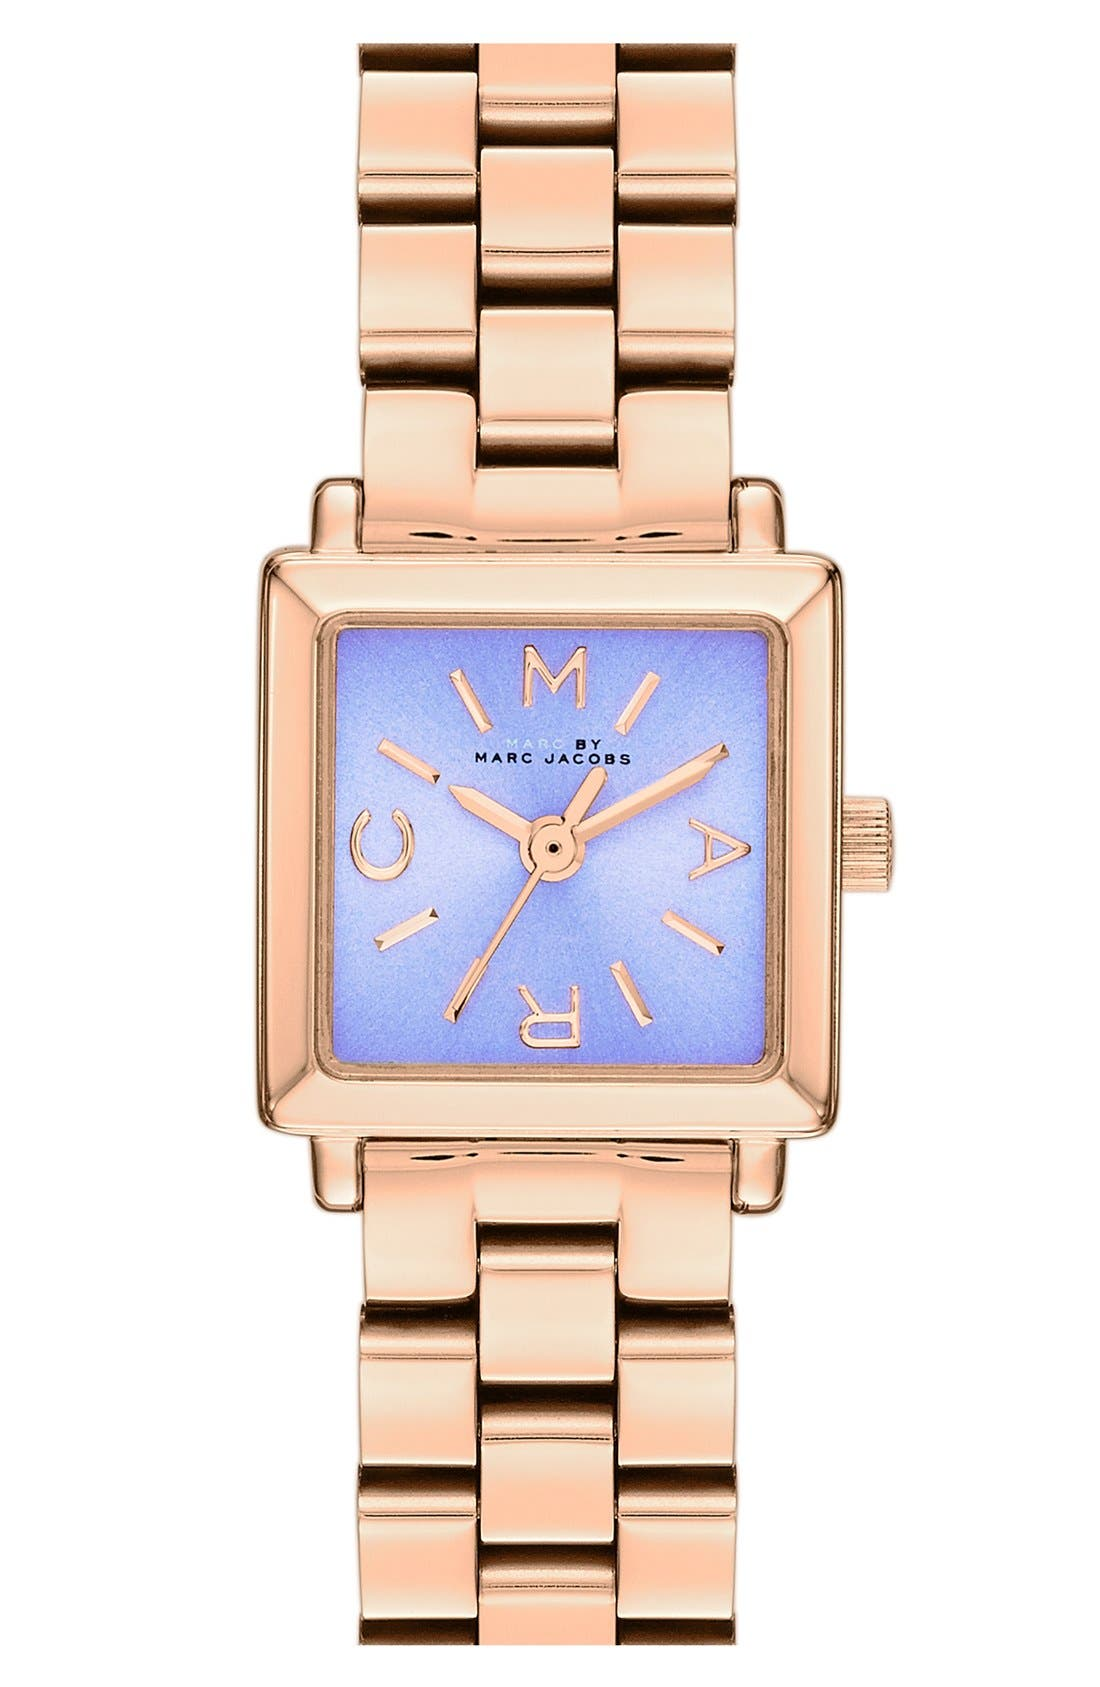 Alternate Image 1 Selected - MARC JACOBS 'Katherine' Square Dial Bracelet Watch, 19mm